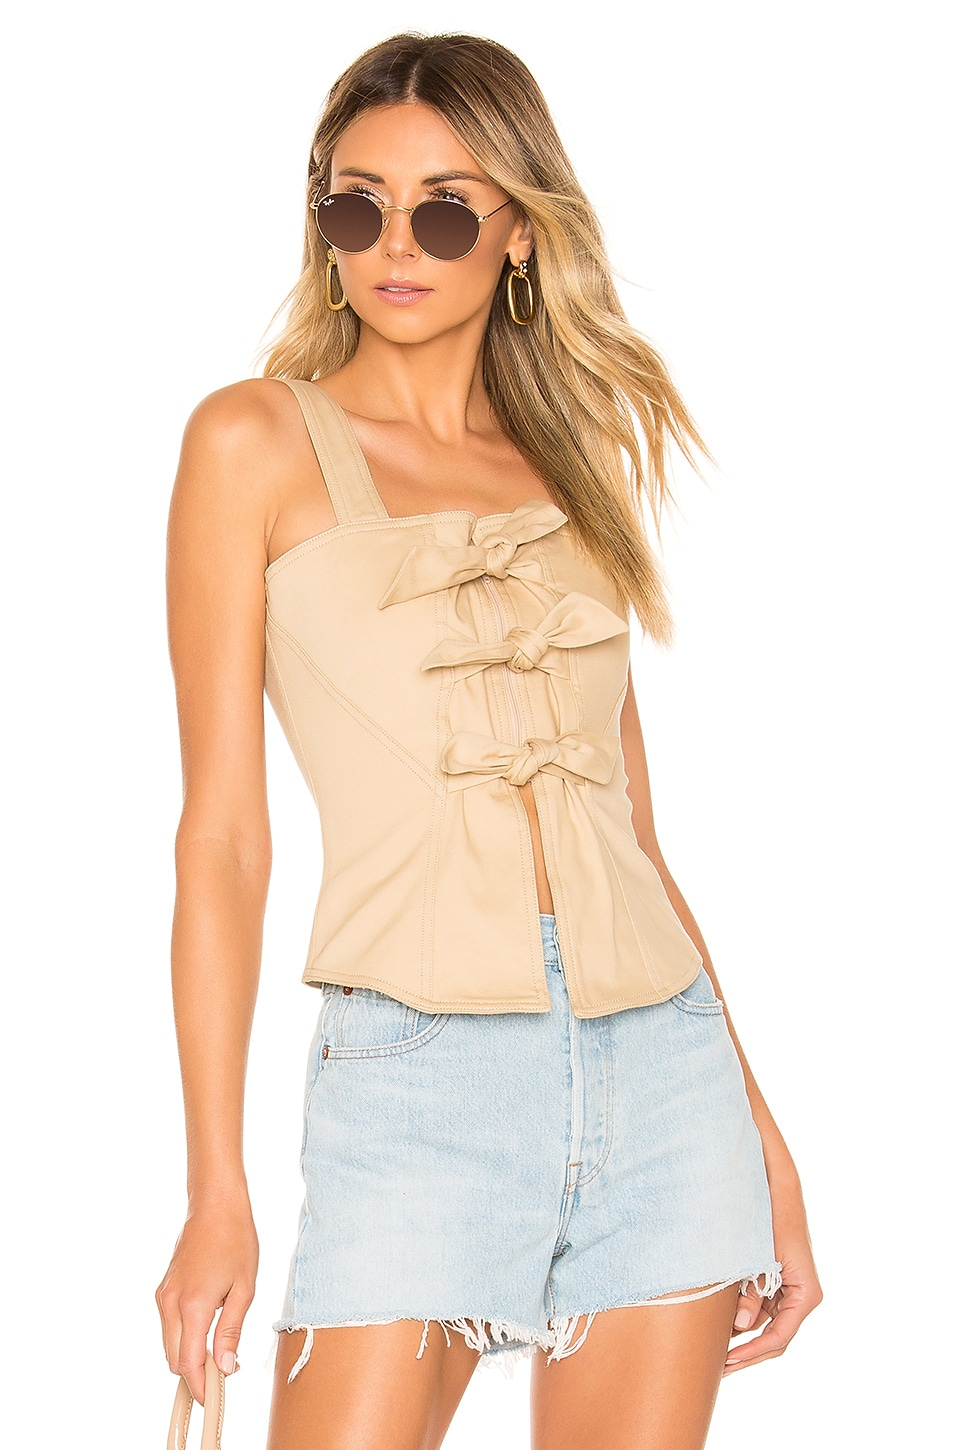 L'Academie The Lana Top en Beige